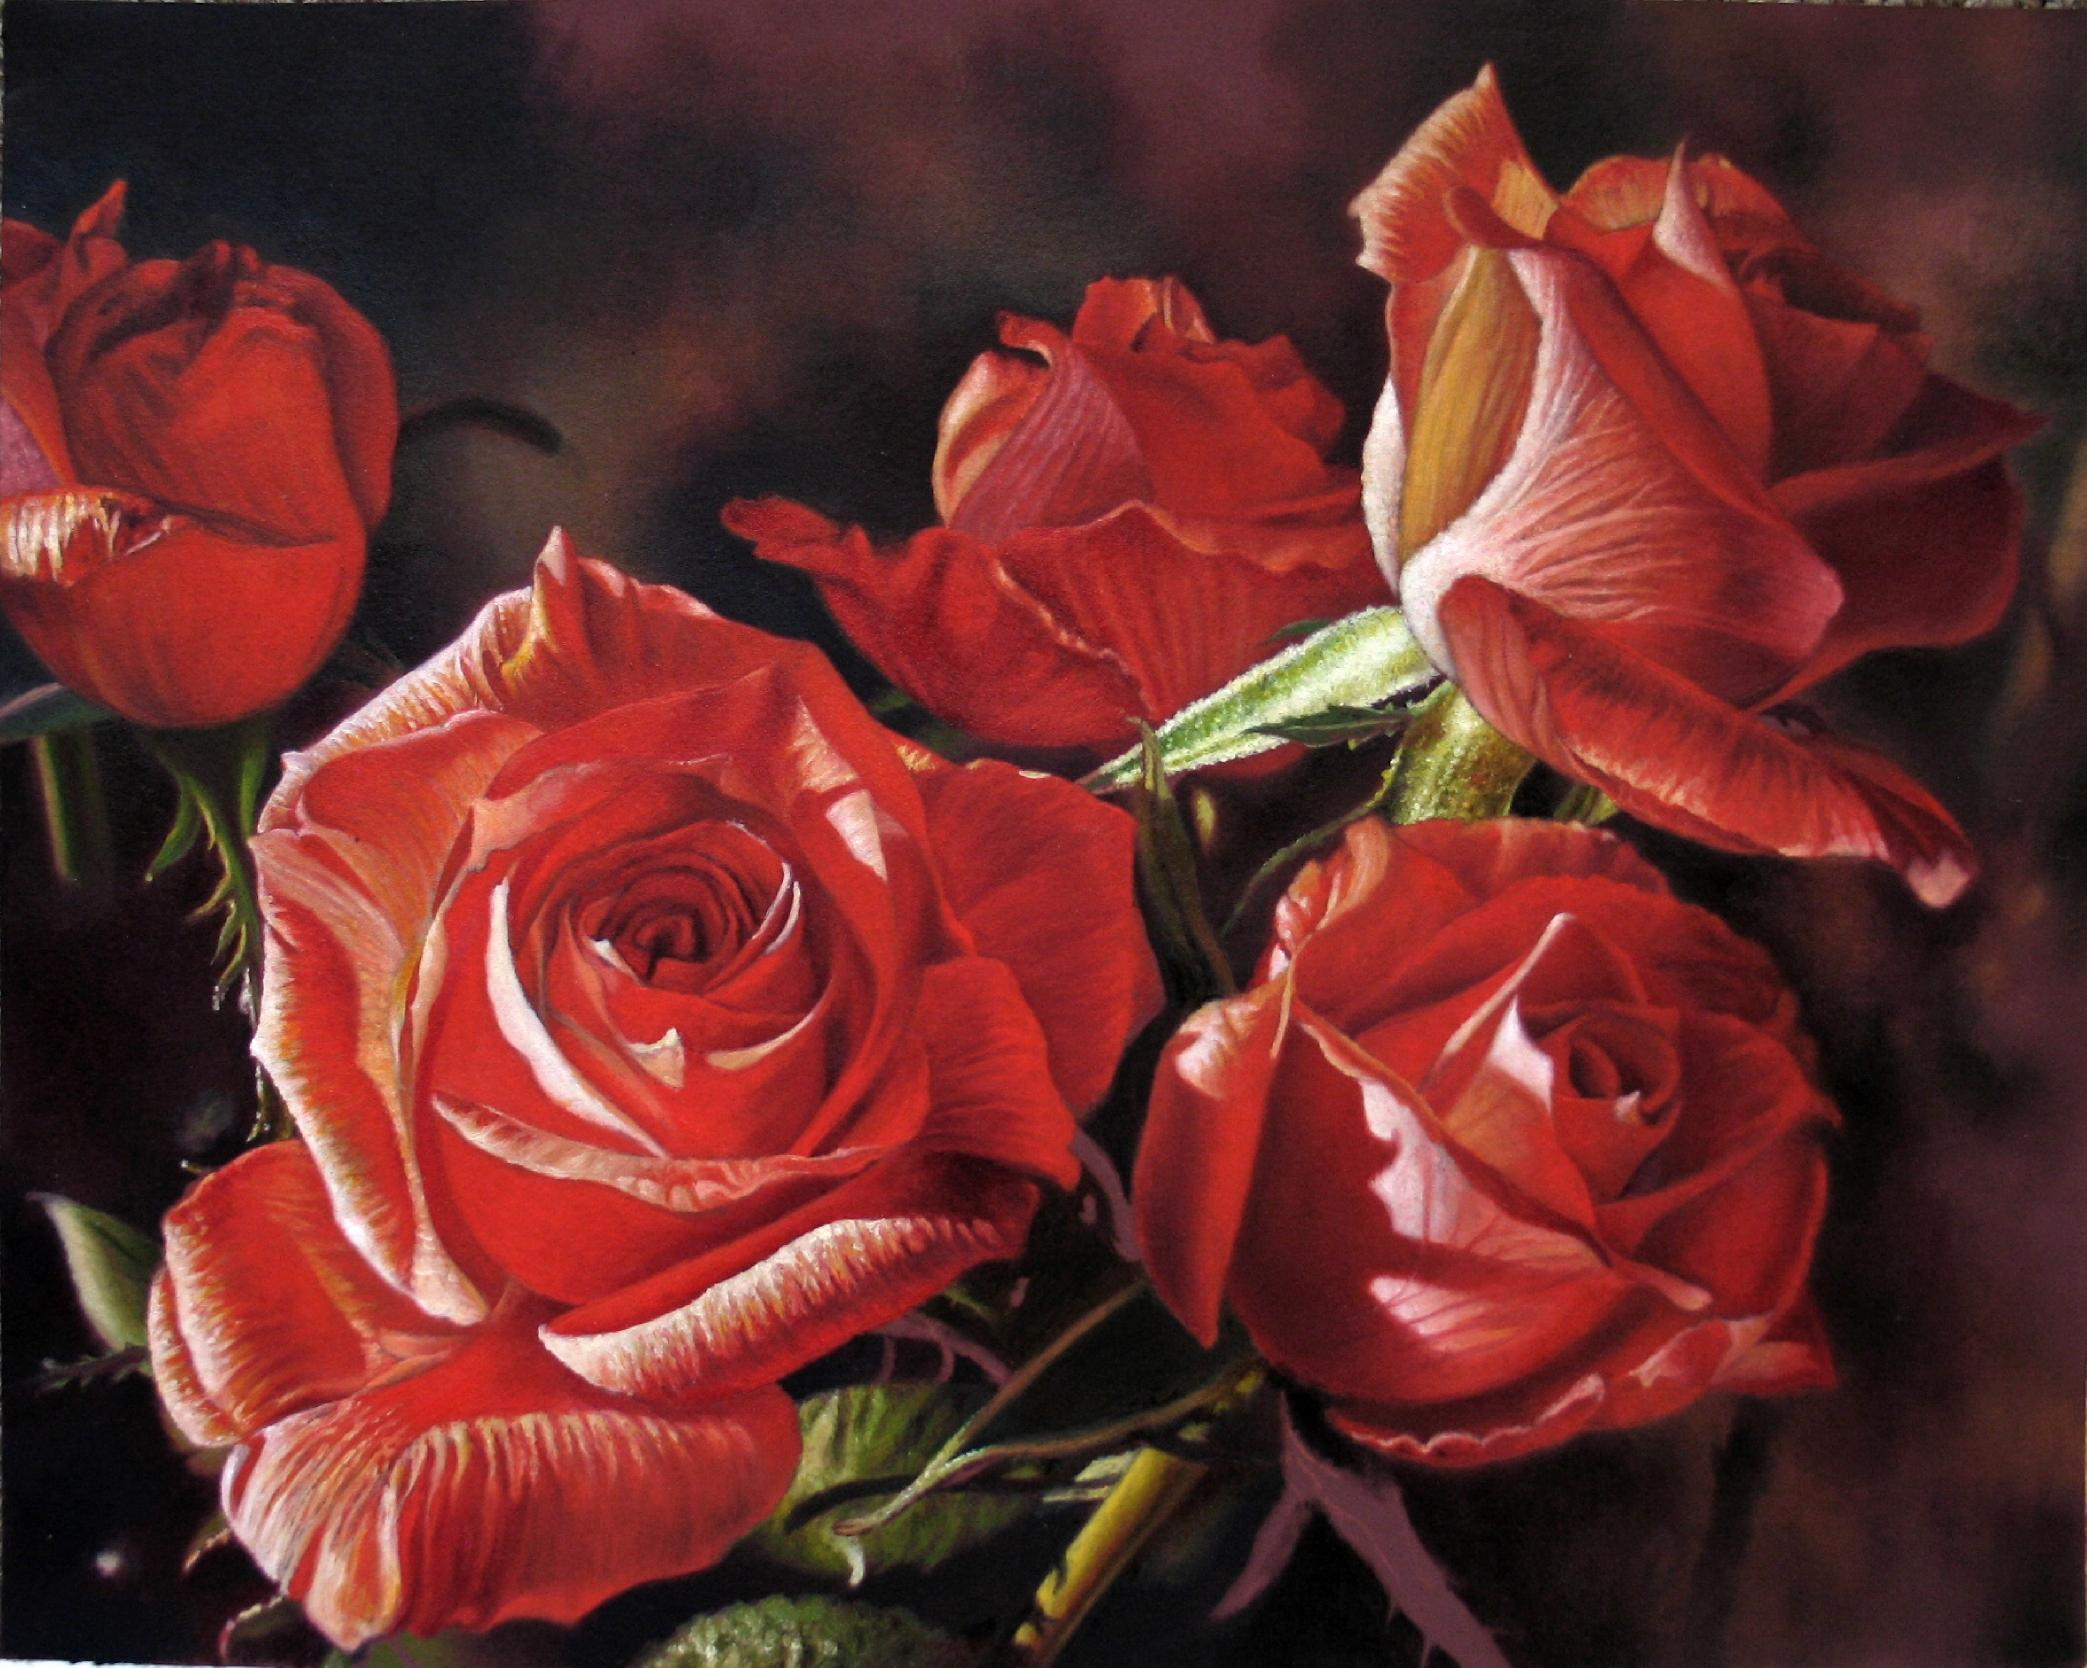 Red Roses Oil Painting | Stephen Shooter | Foundmyself: www.foundmyself.com/Stephen+Shooter/art/red-roses-oil-painting/86864